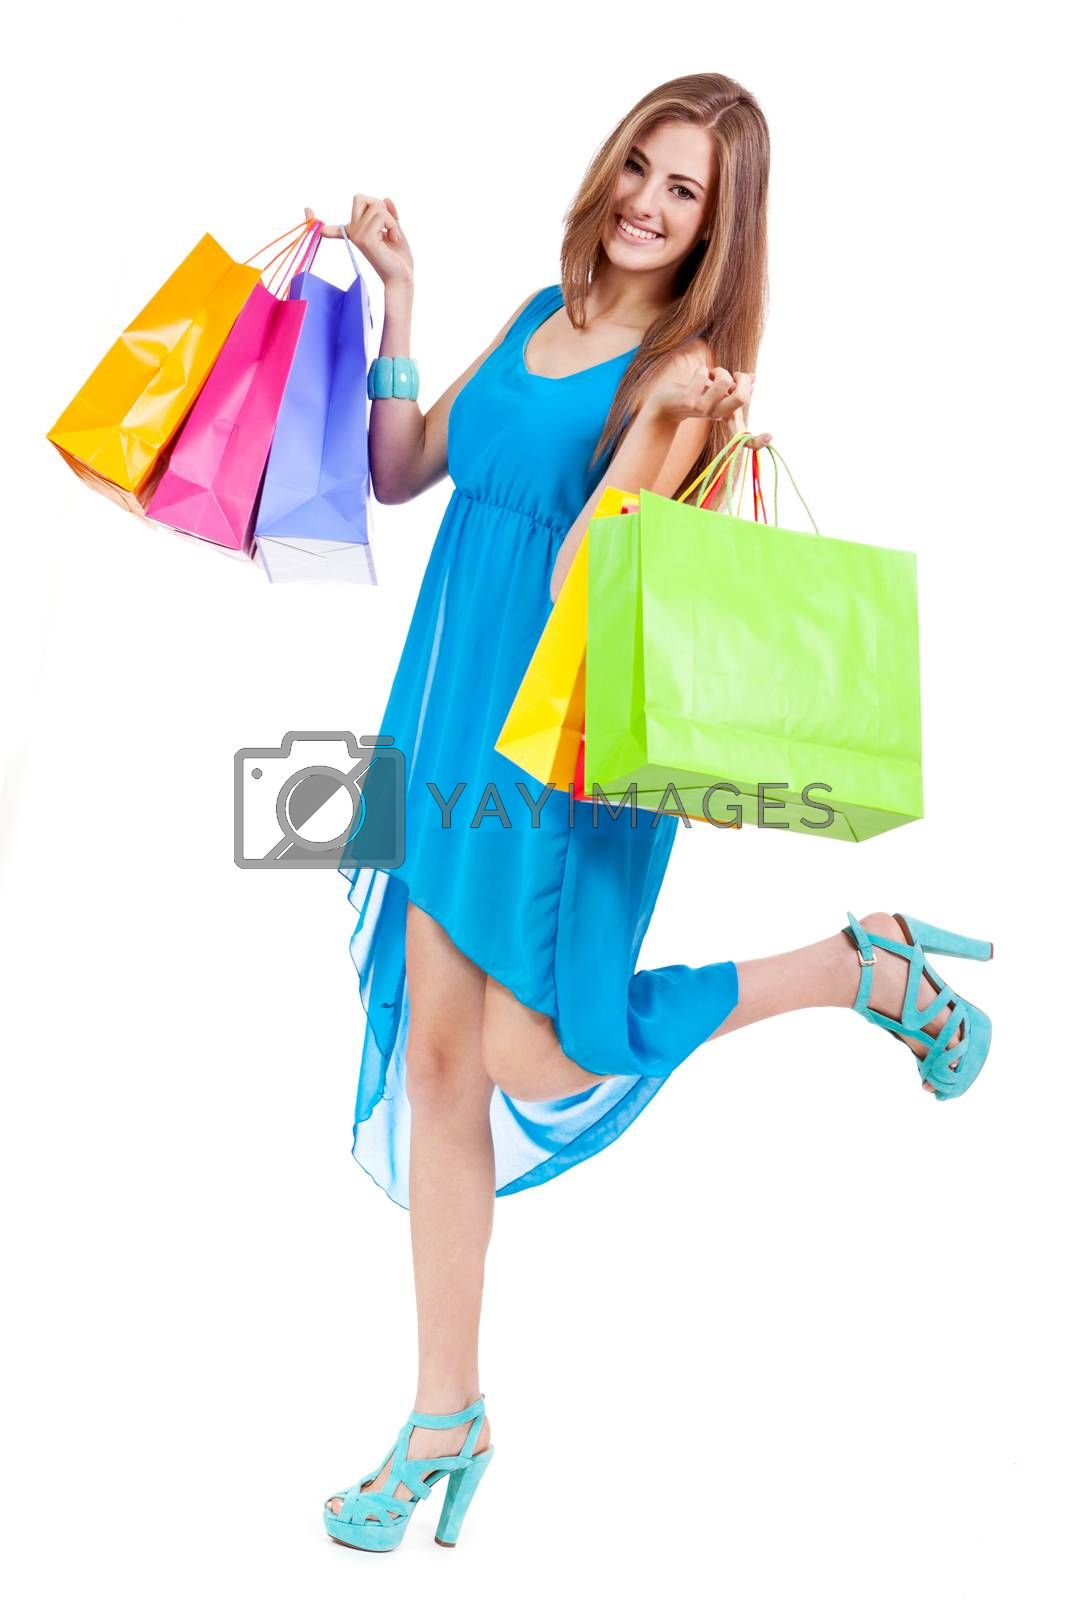 attractive young woman with colorful shopping bags isolated on white background